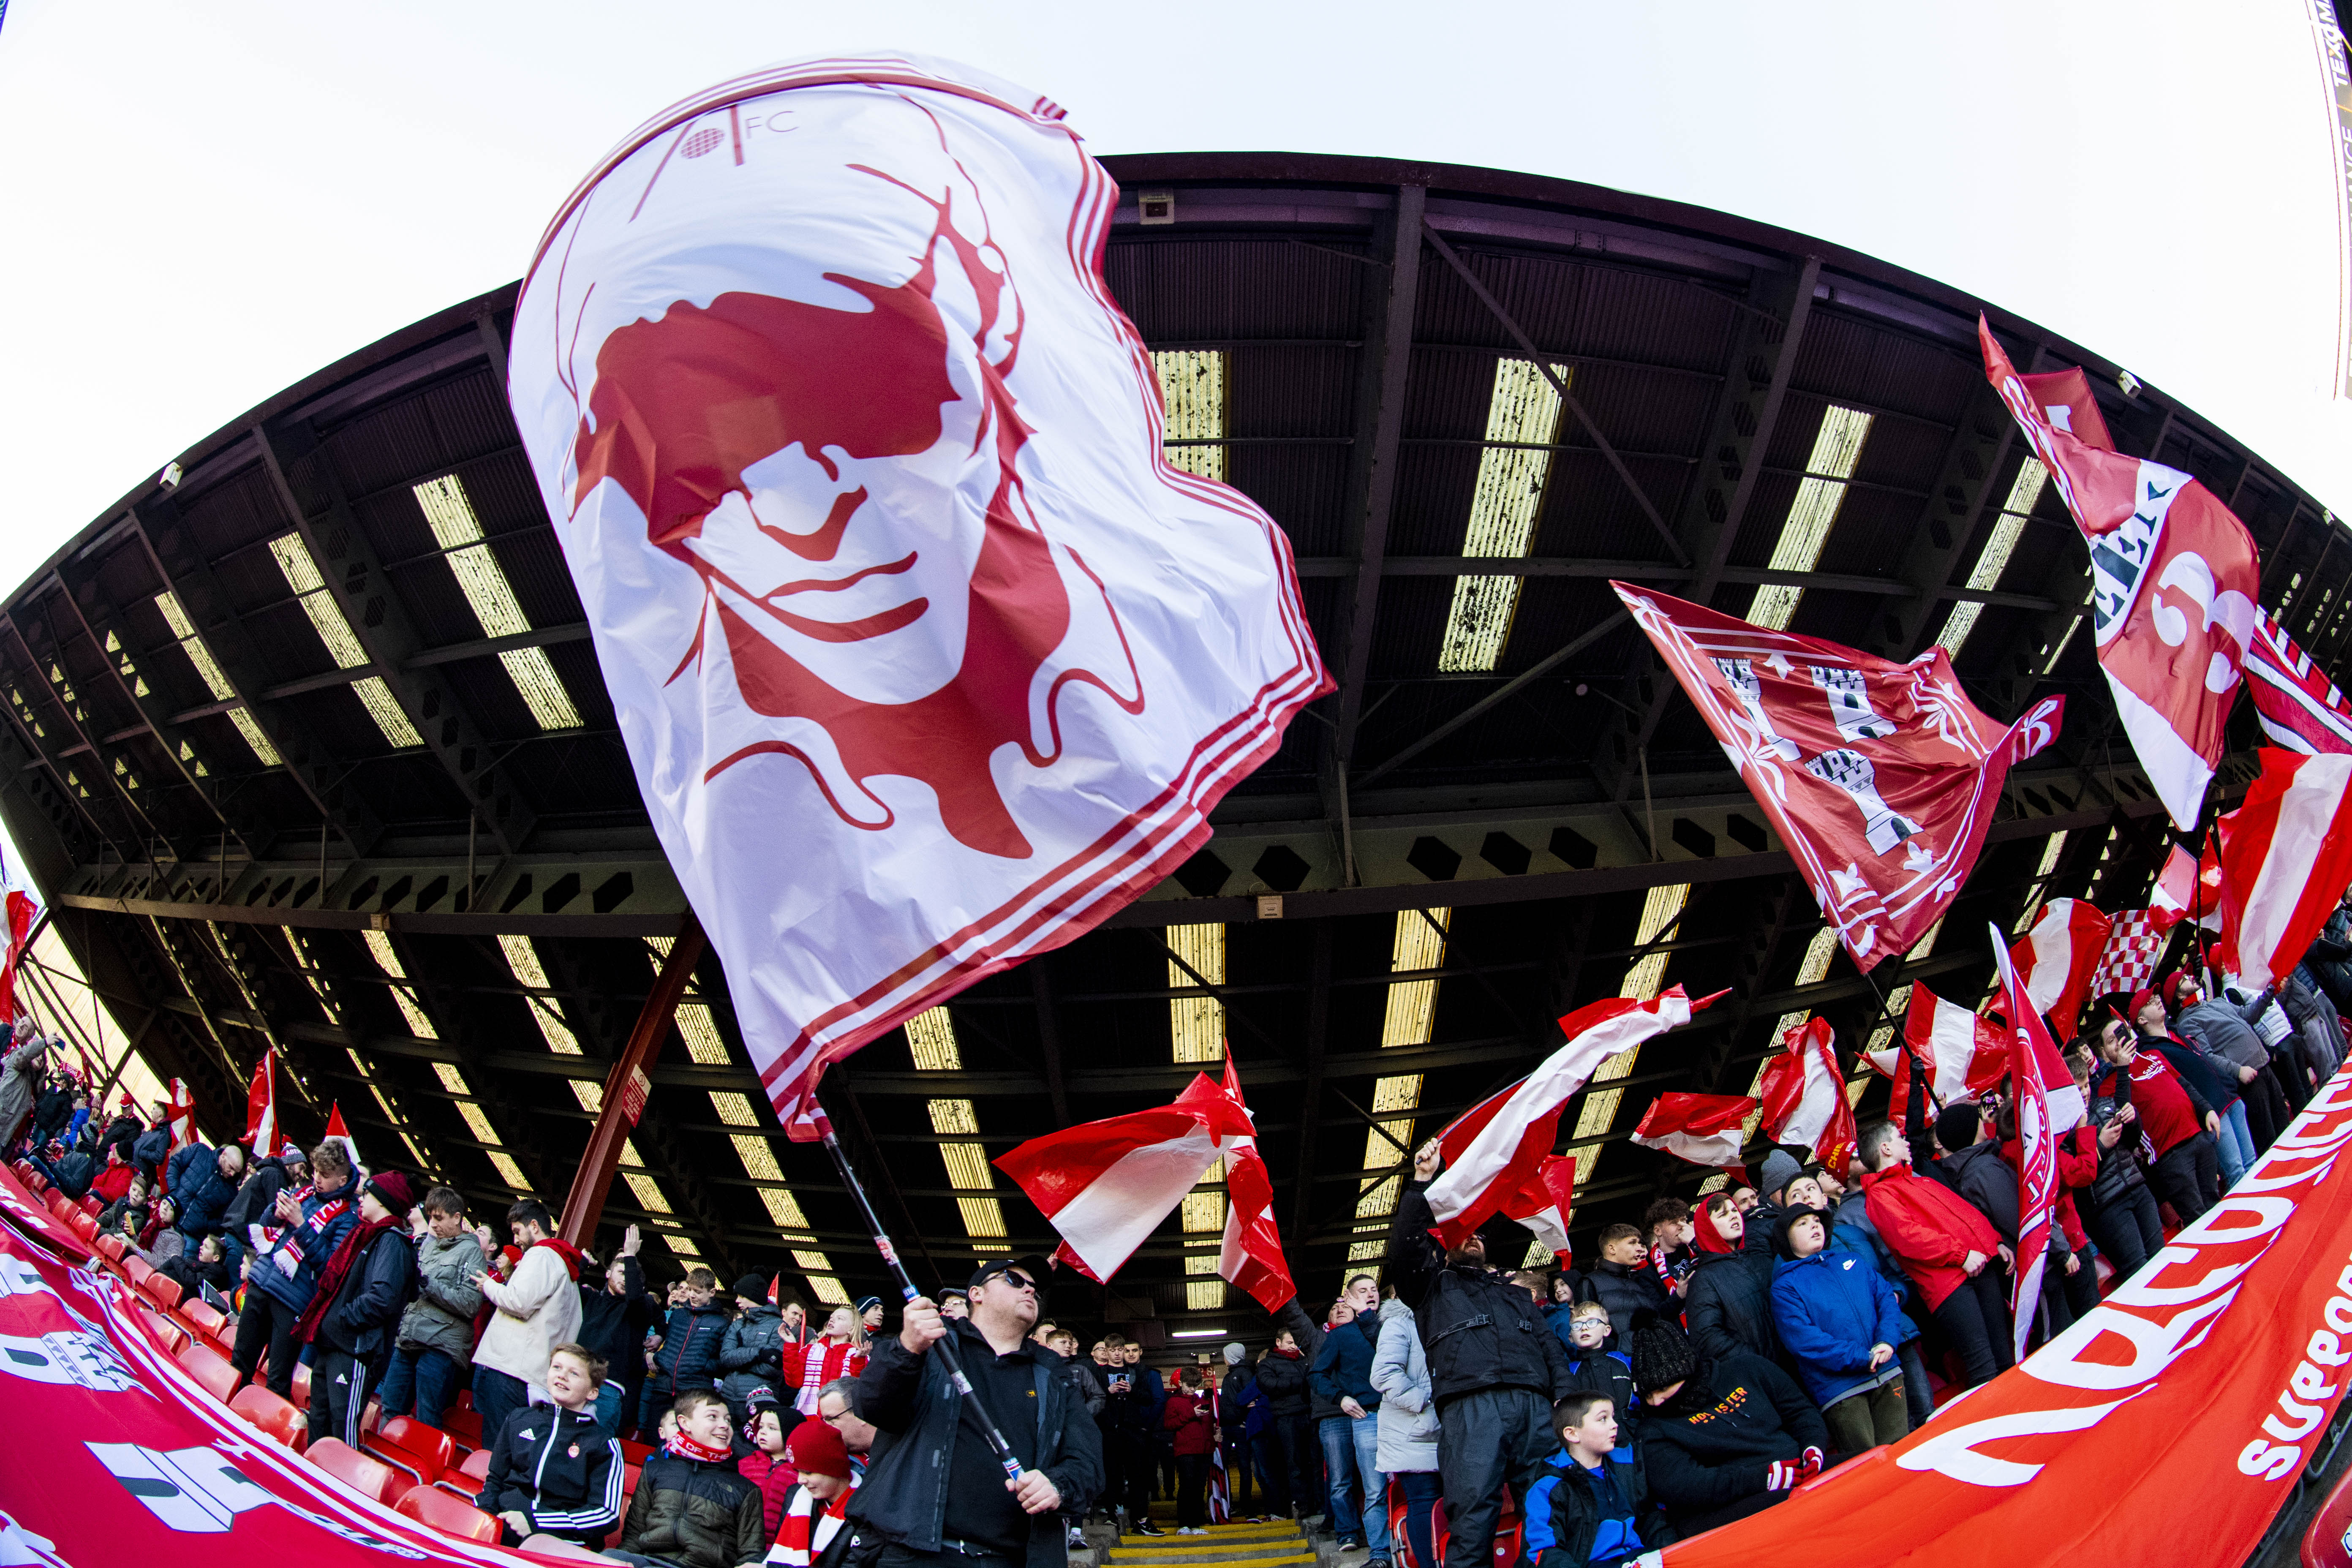 A flag display ahead of kick-off during the William Hill Scottish Cup fourth round tie between Aberdeen and Dumbarton.